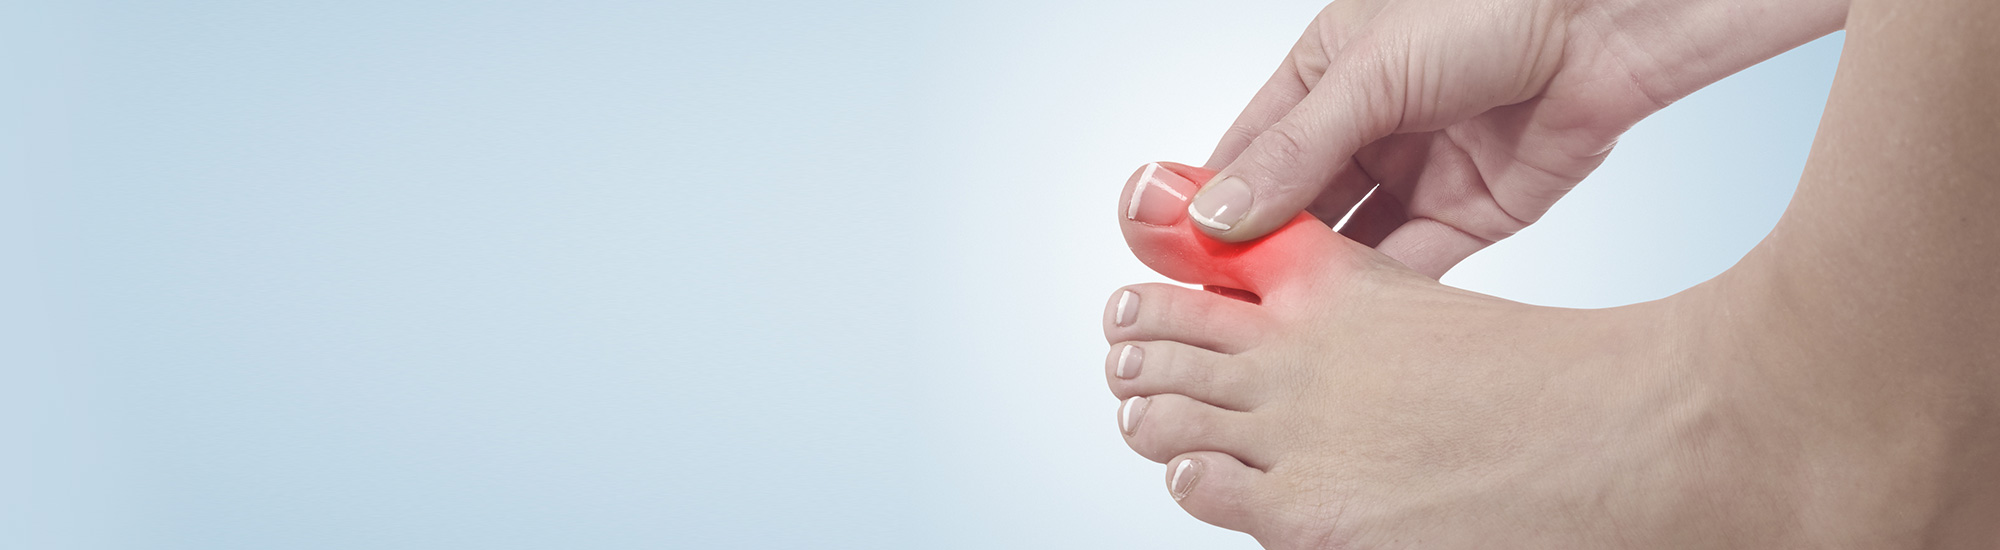 Ayurvedic treatment for Gout Symptoms